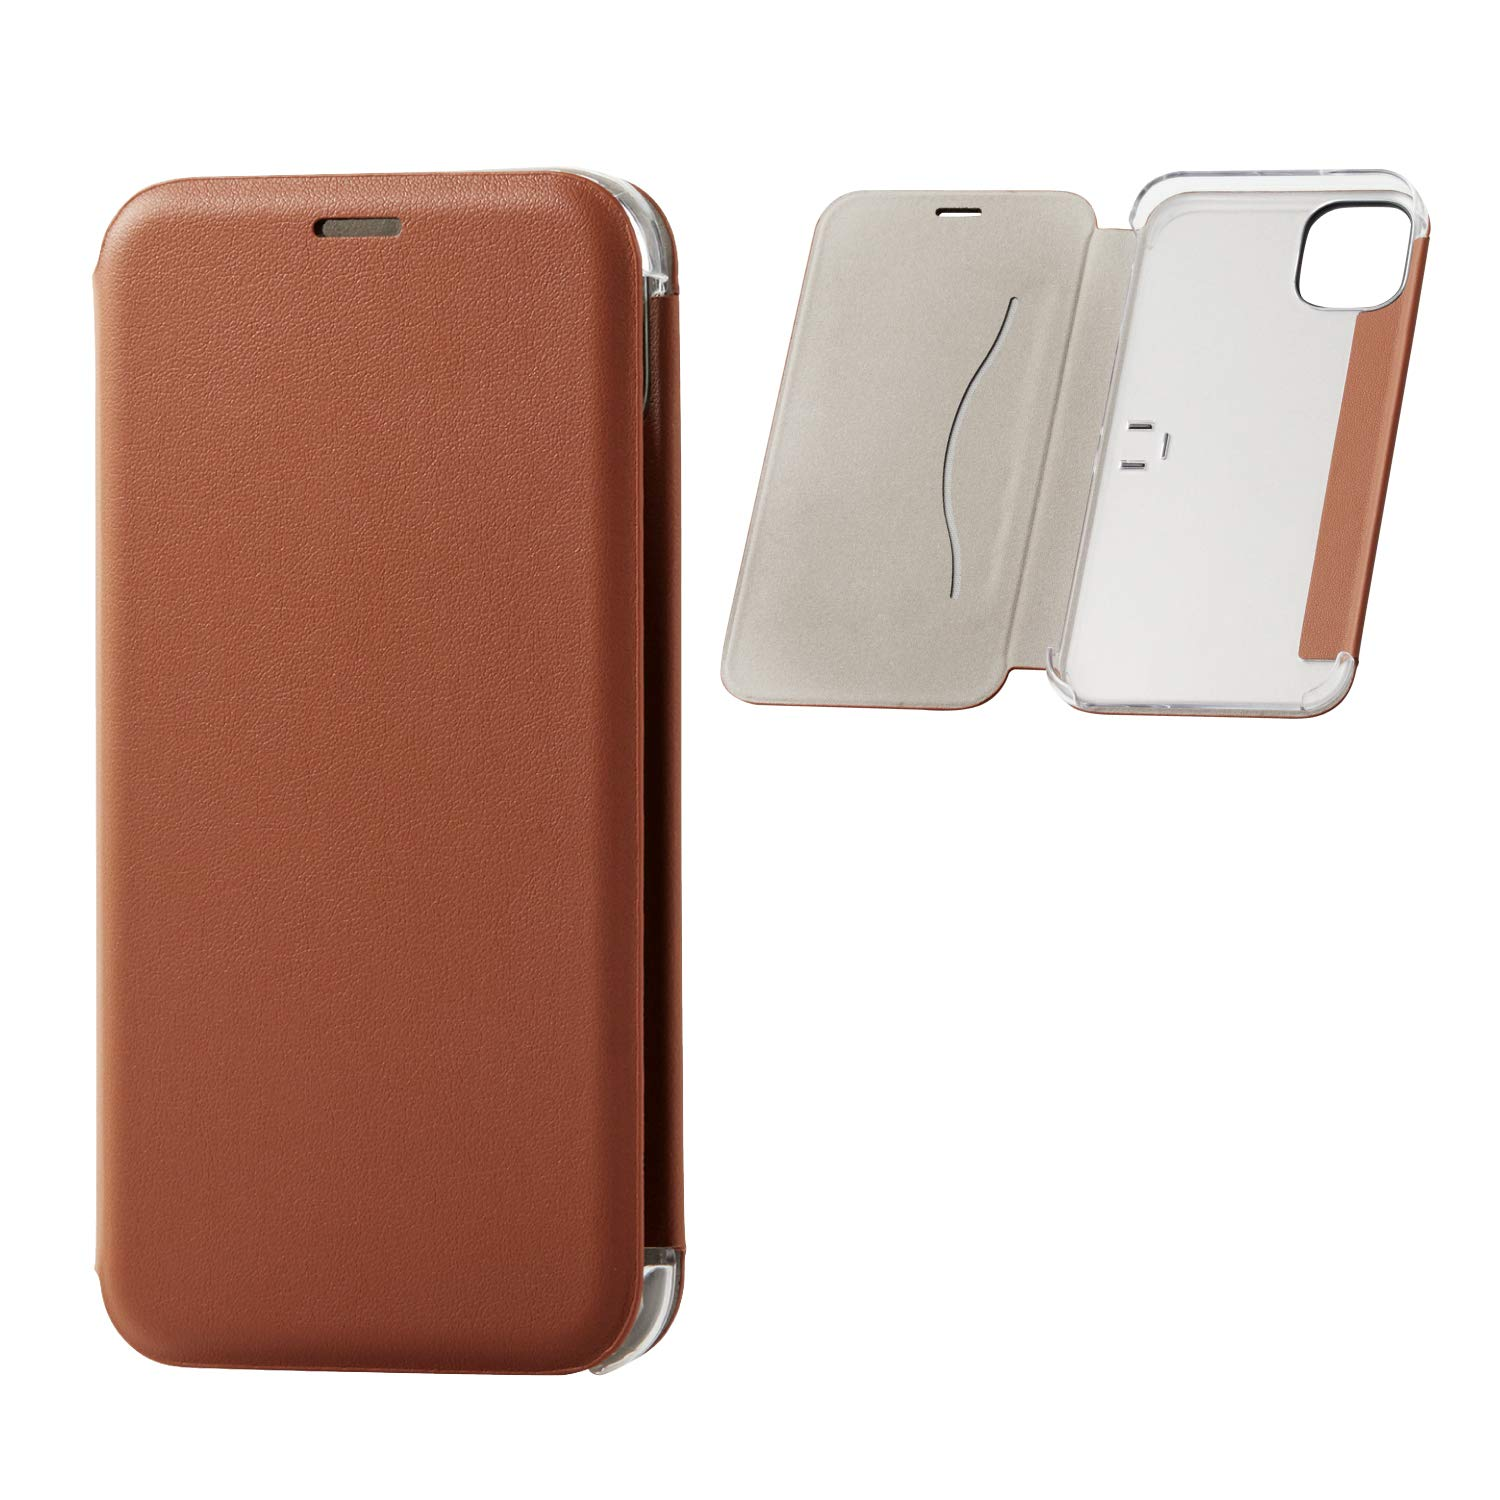 ELECOM-Japan Brand- PU Leather Flip Case Slim and Magnetic Type/Tri-Fold Stand/Compatible with iPhone 11/ Brown/PM-A19CPLFUKBR